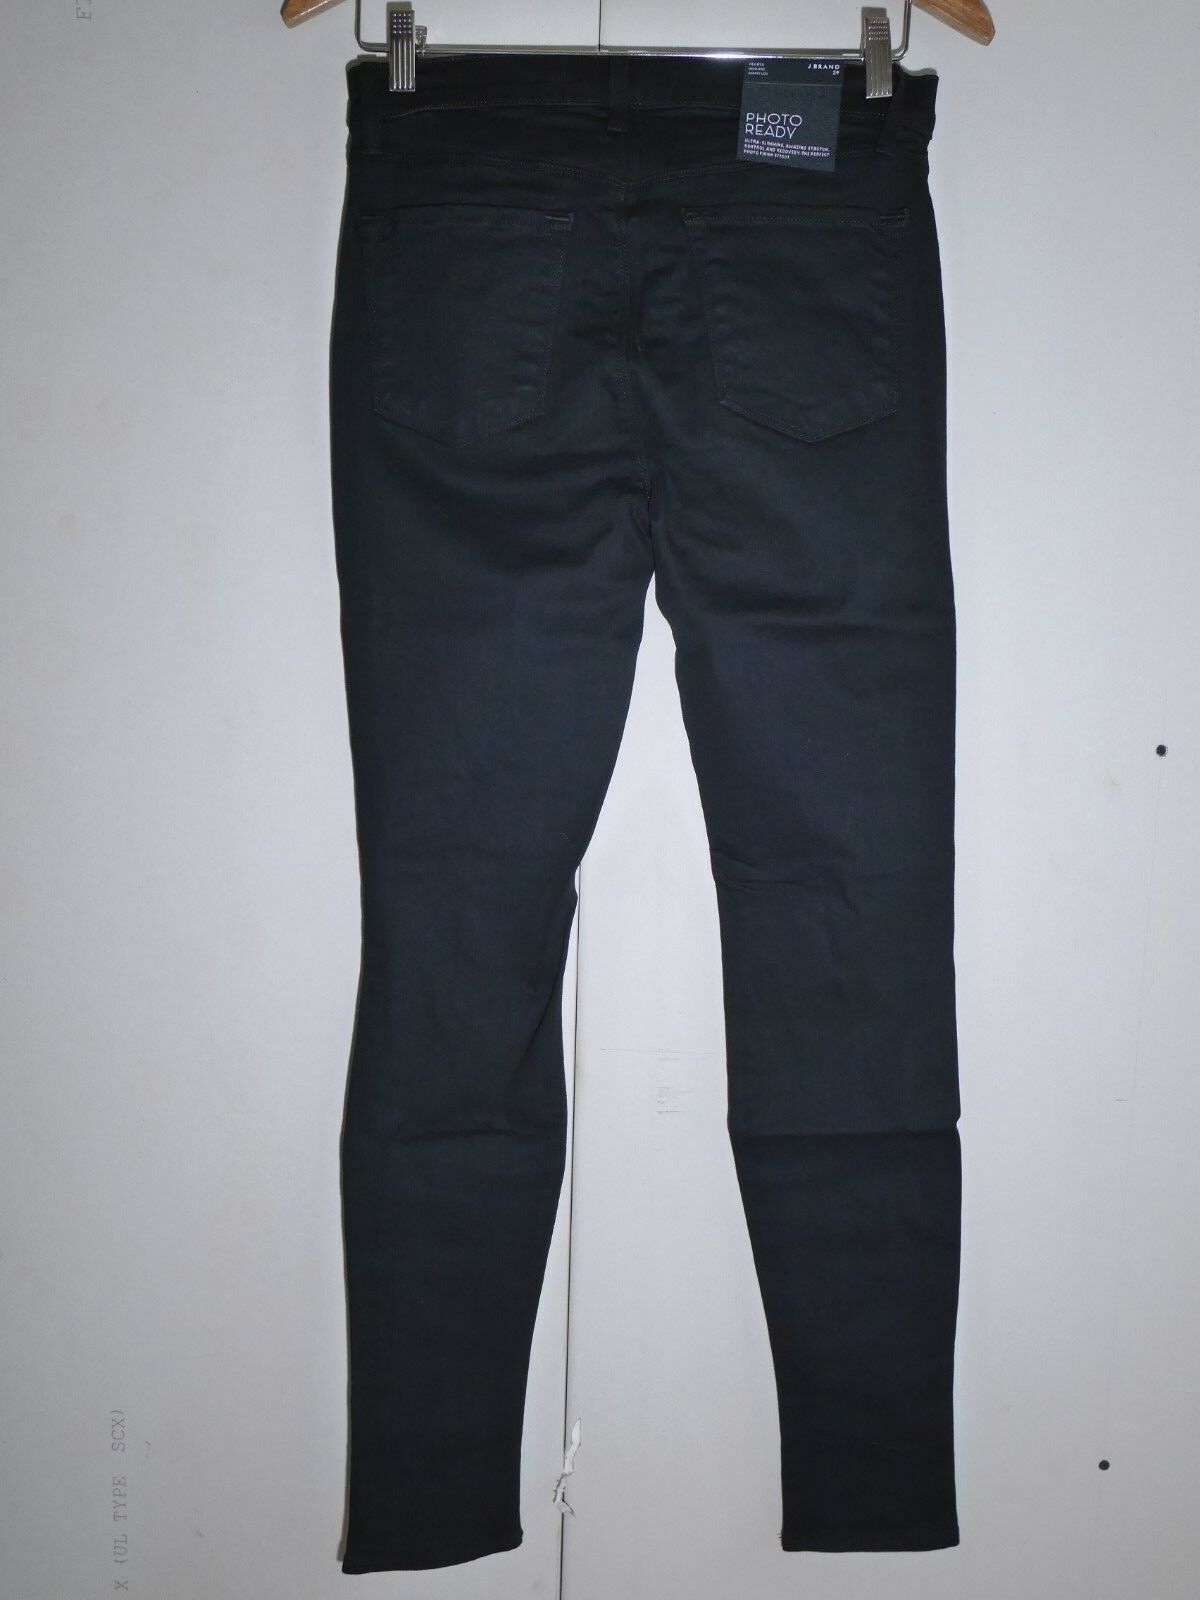 $198 NEW J Brand Maria - High Rise Skinny in Black Heart Destroyed - Size 29 image 3